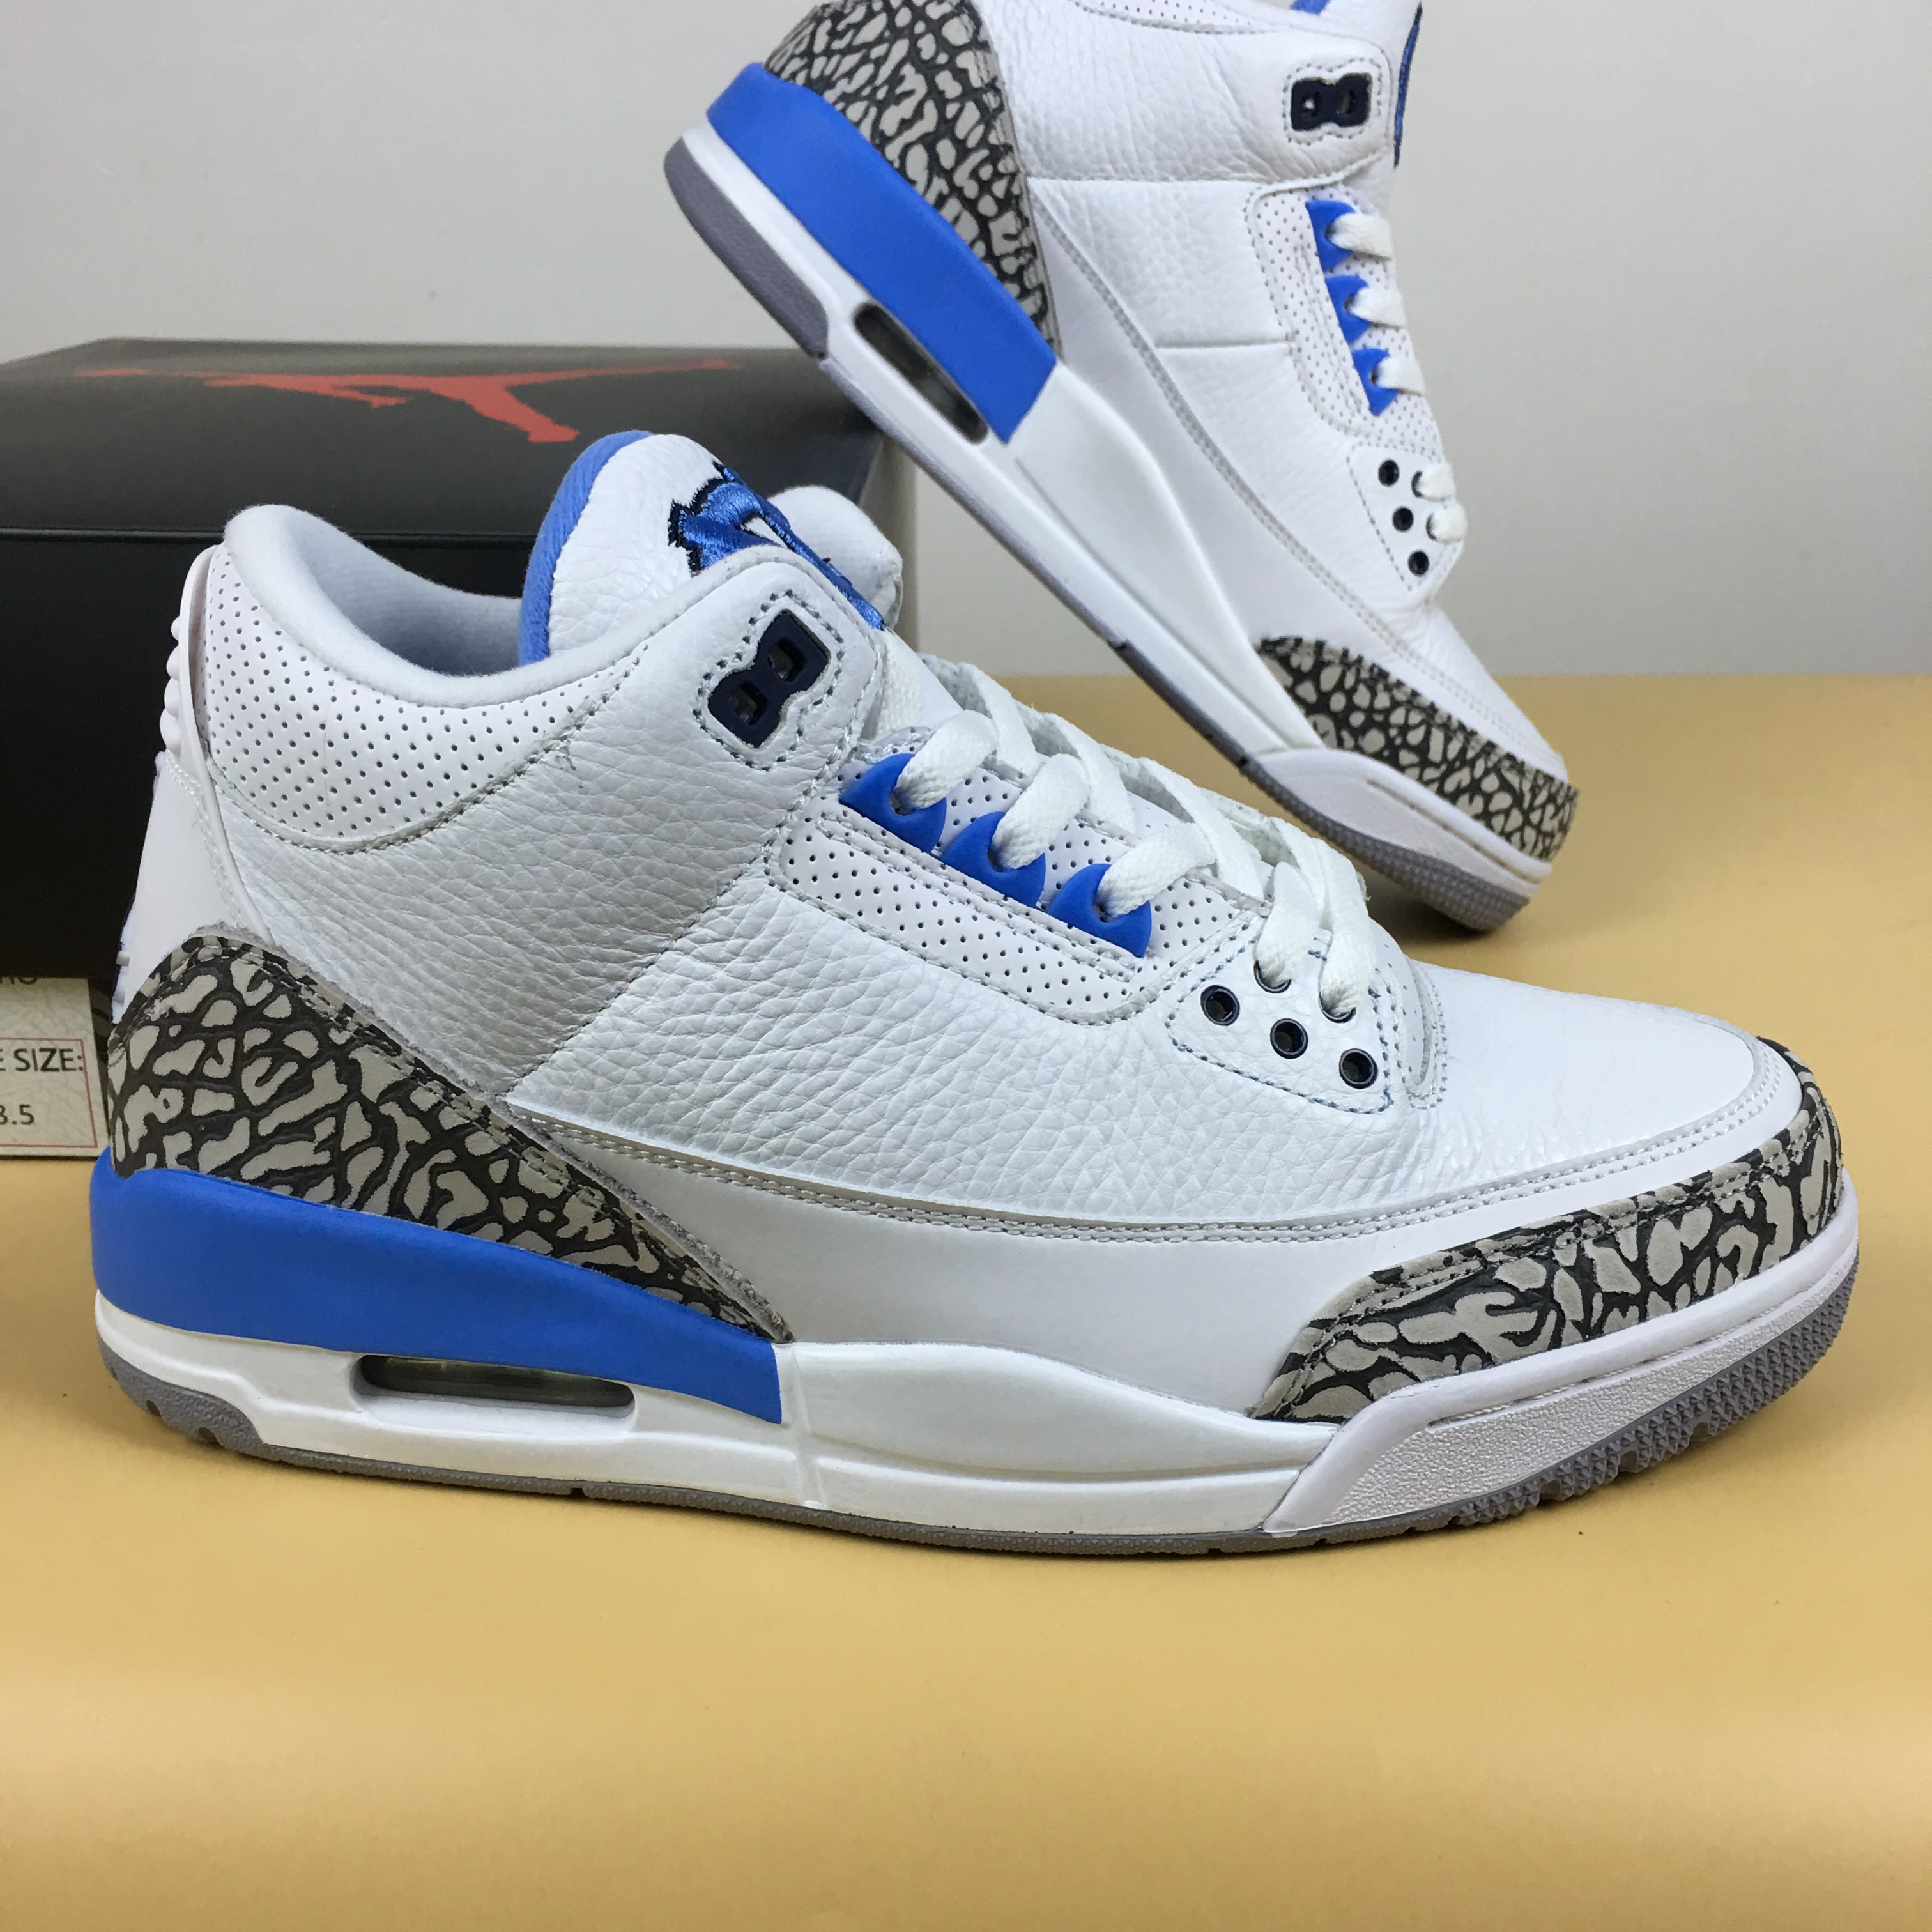 Air jordan 3 Retro UNC Shoes